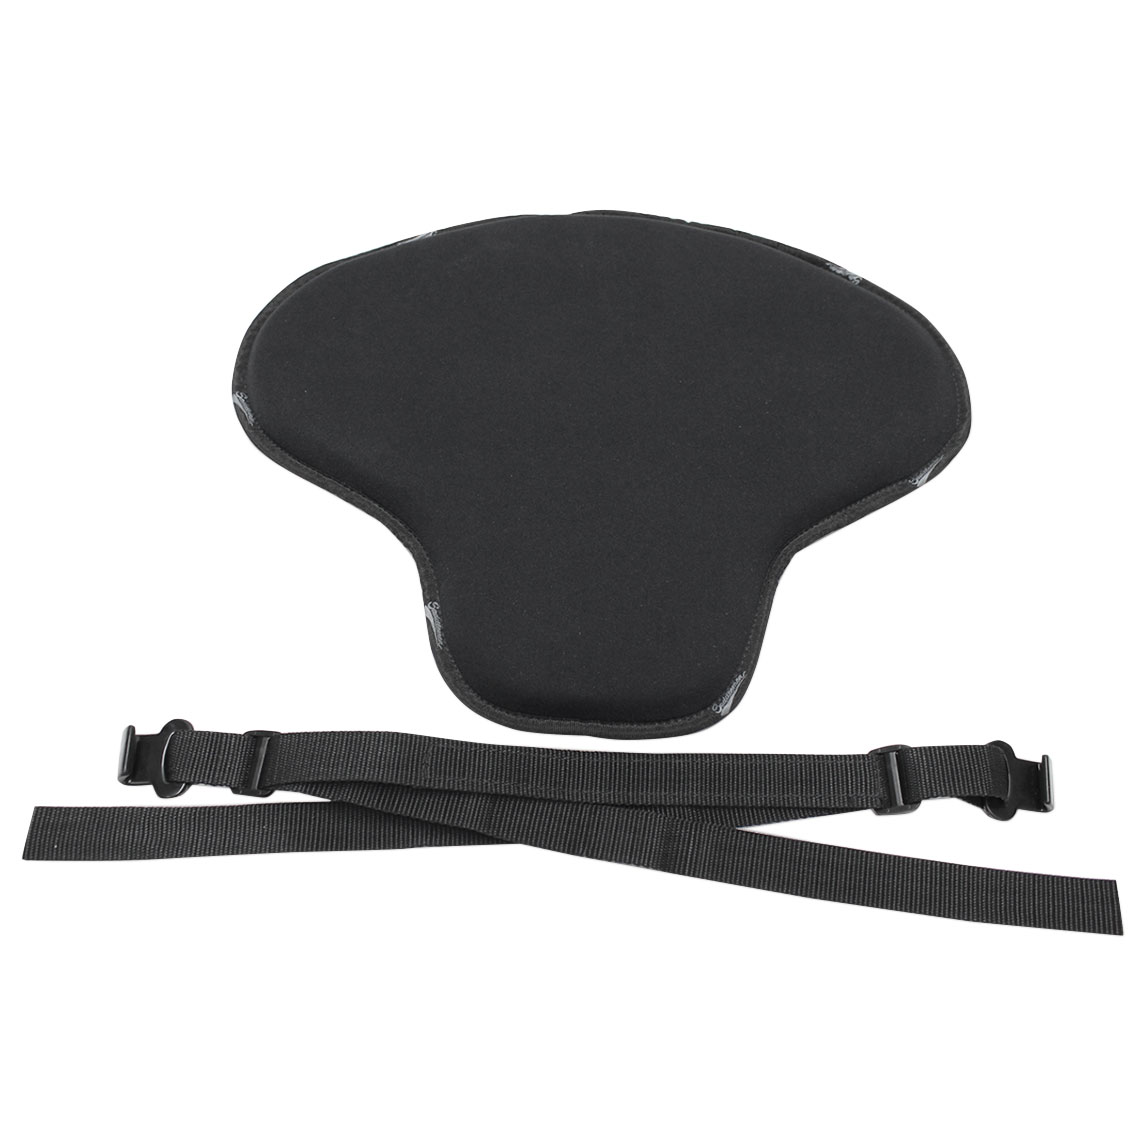 Saddlemen Easy Reach Original Soft Stretch Comfort Gel Motorcycle Seat Pad